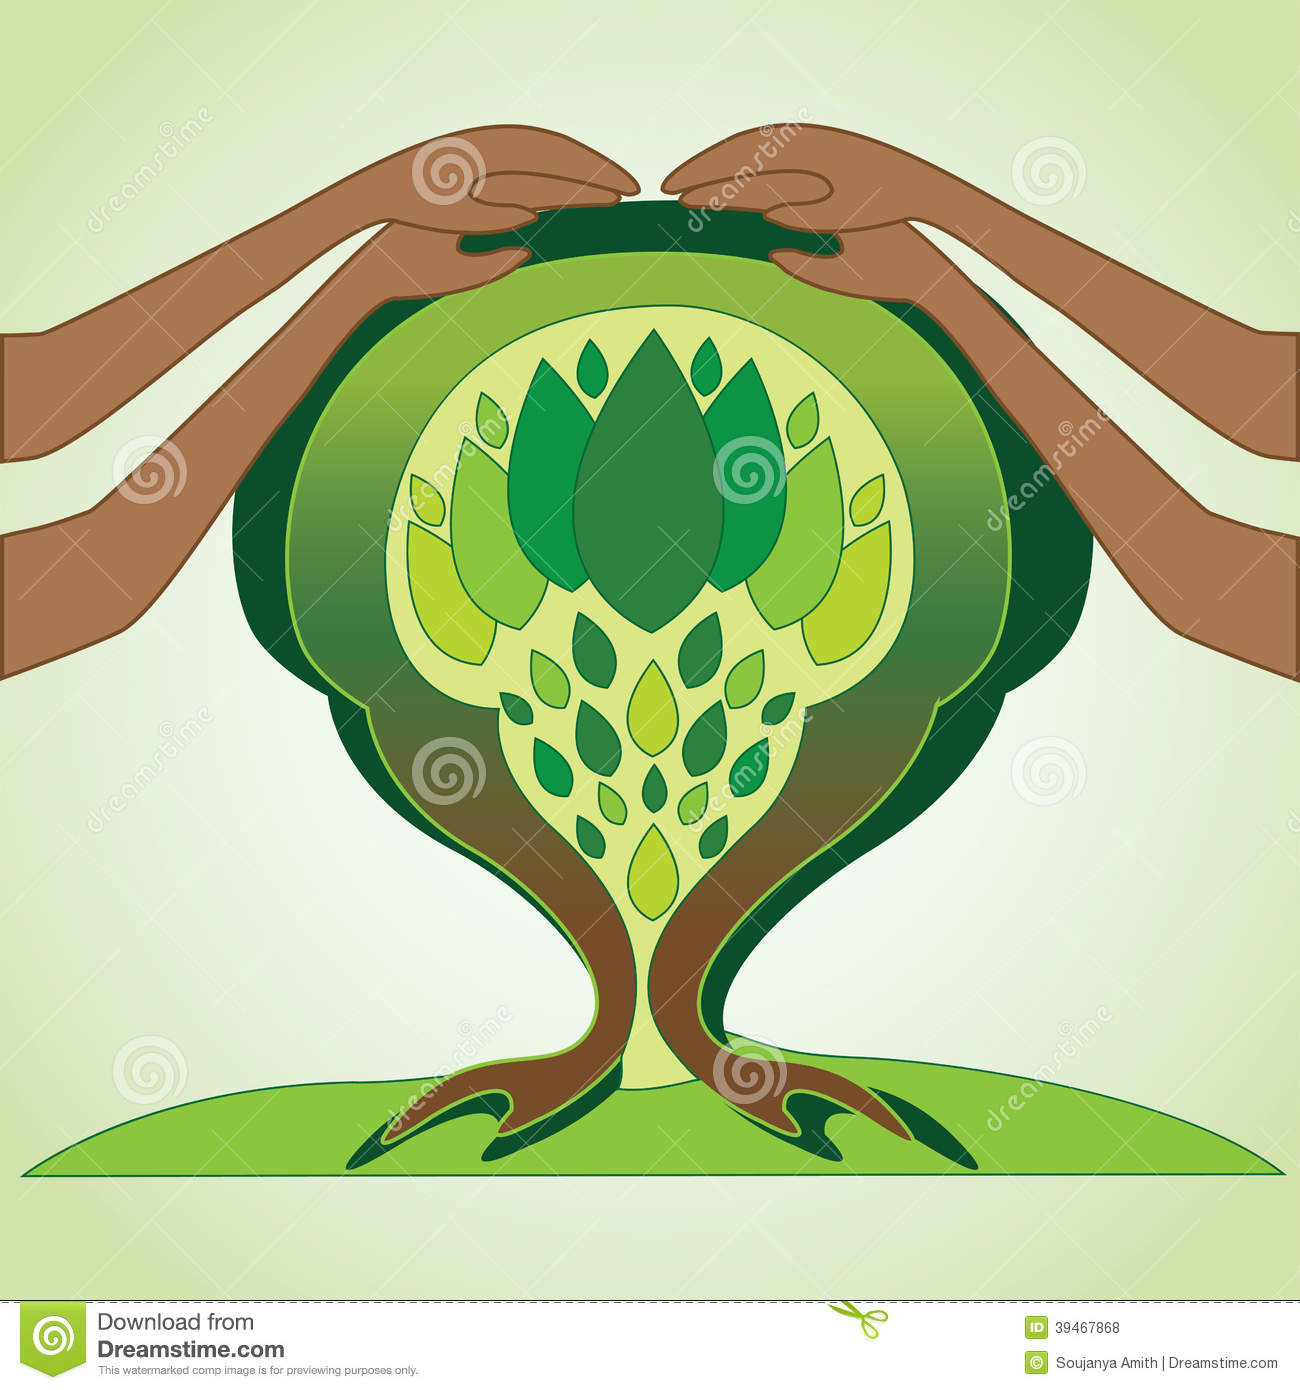 Save trees clipart clipart Save Trees Stock Vector - Image: 39467868 clipart